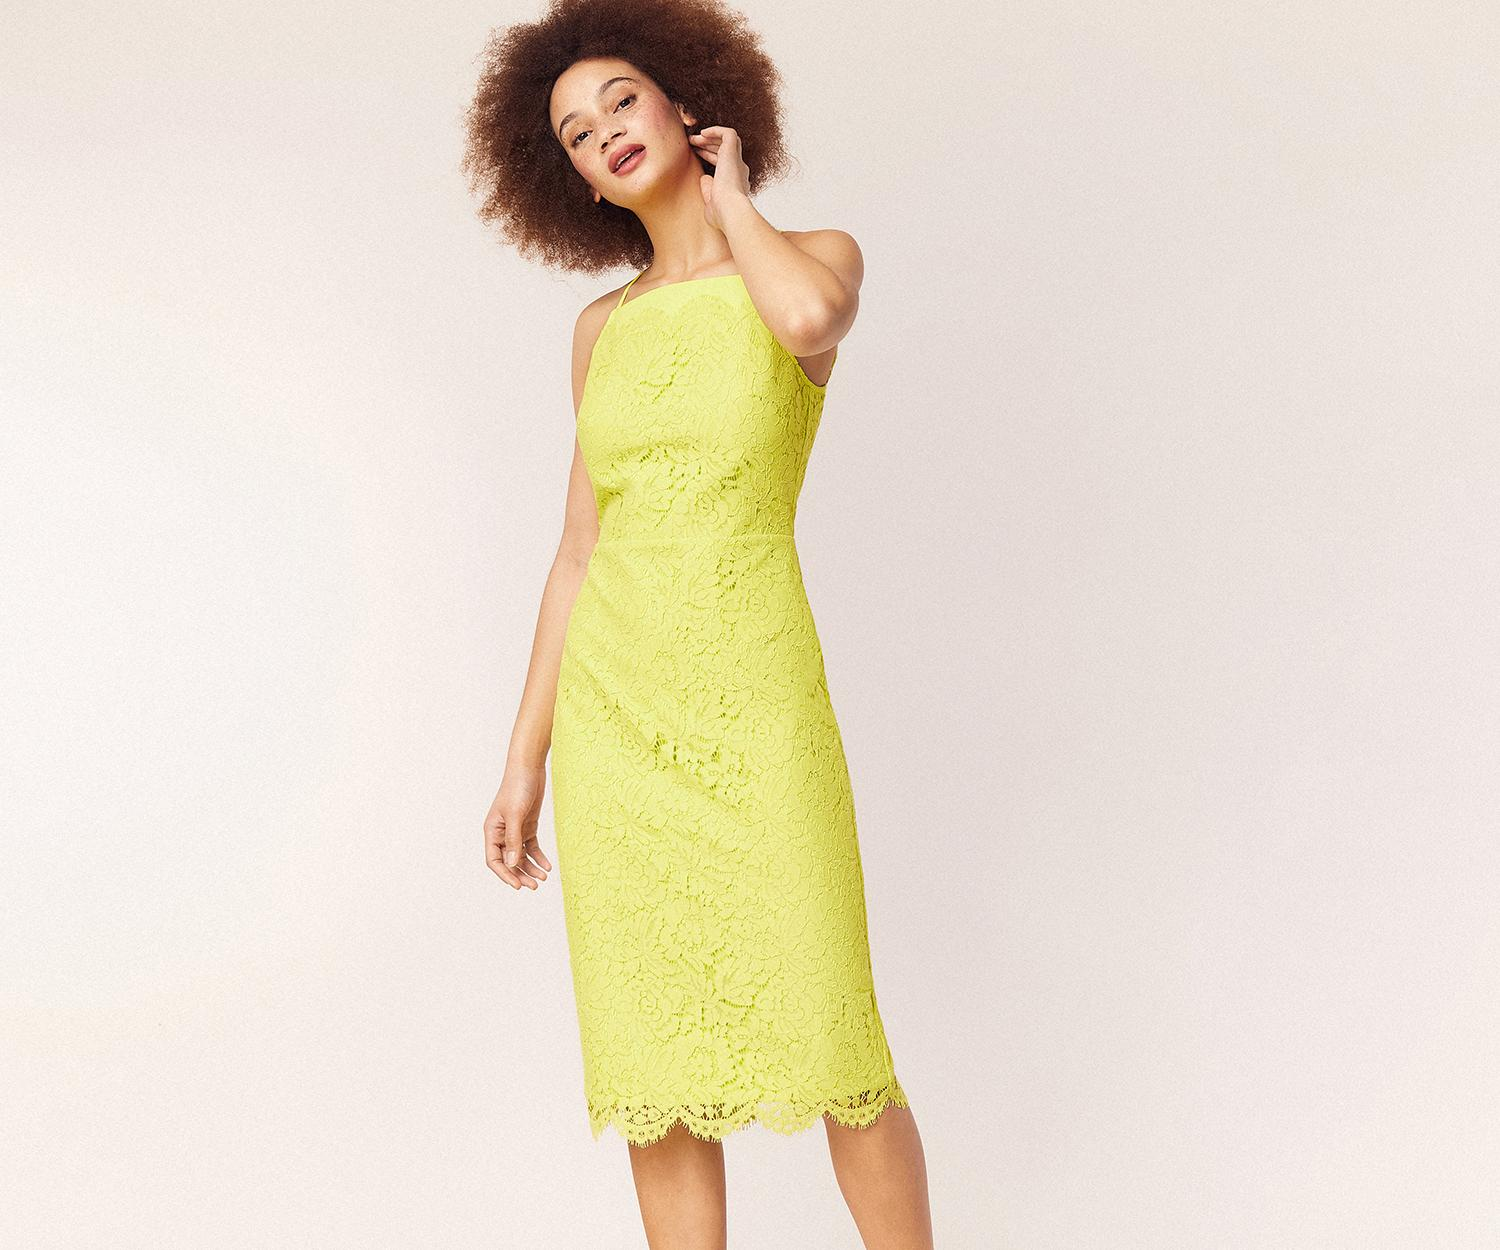 a7b377d5ba9804 Oasis Lace Square Neck Midi Dress in Yellow - Save 20% - Lyst